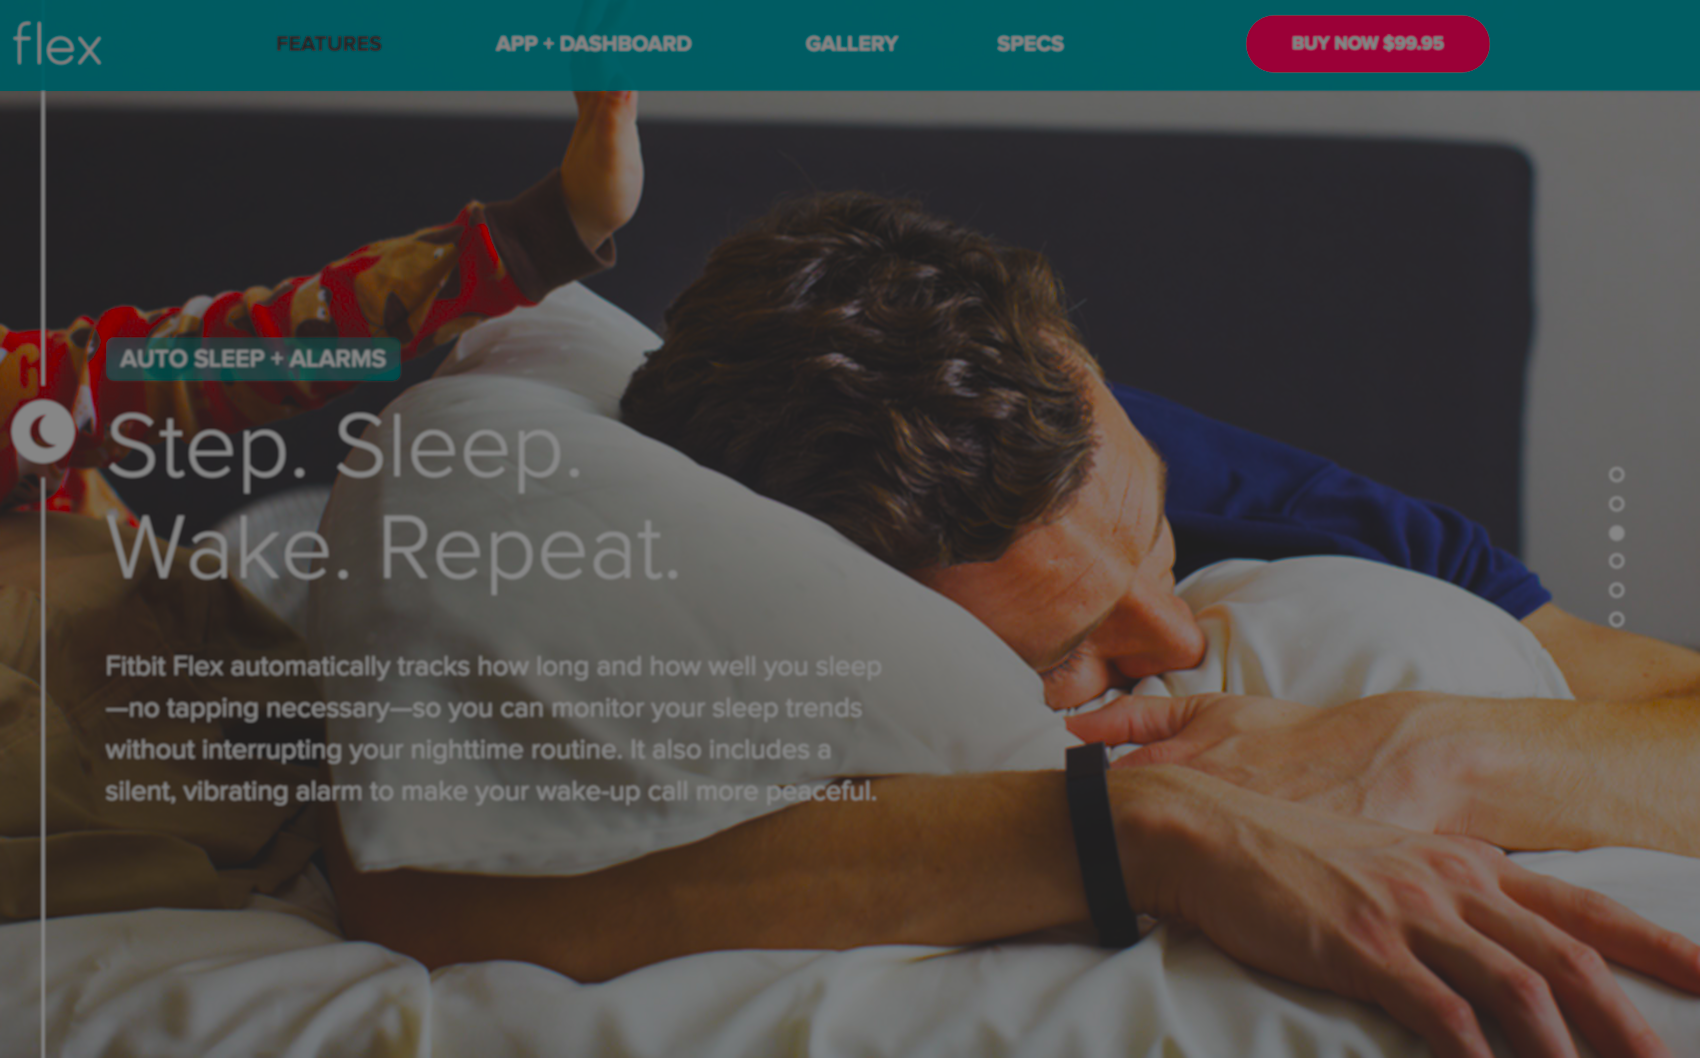 Fitbit Must Face Lawsuit Over Sleep-Tracking Claims